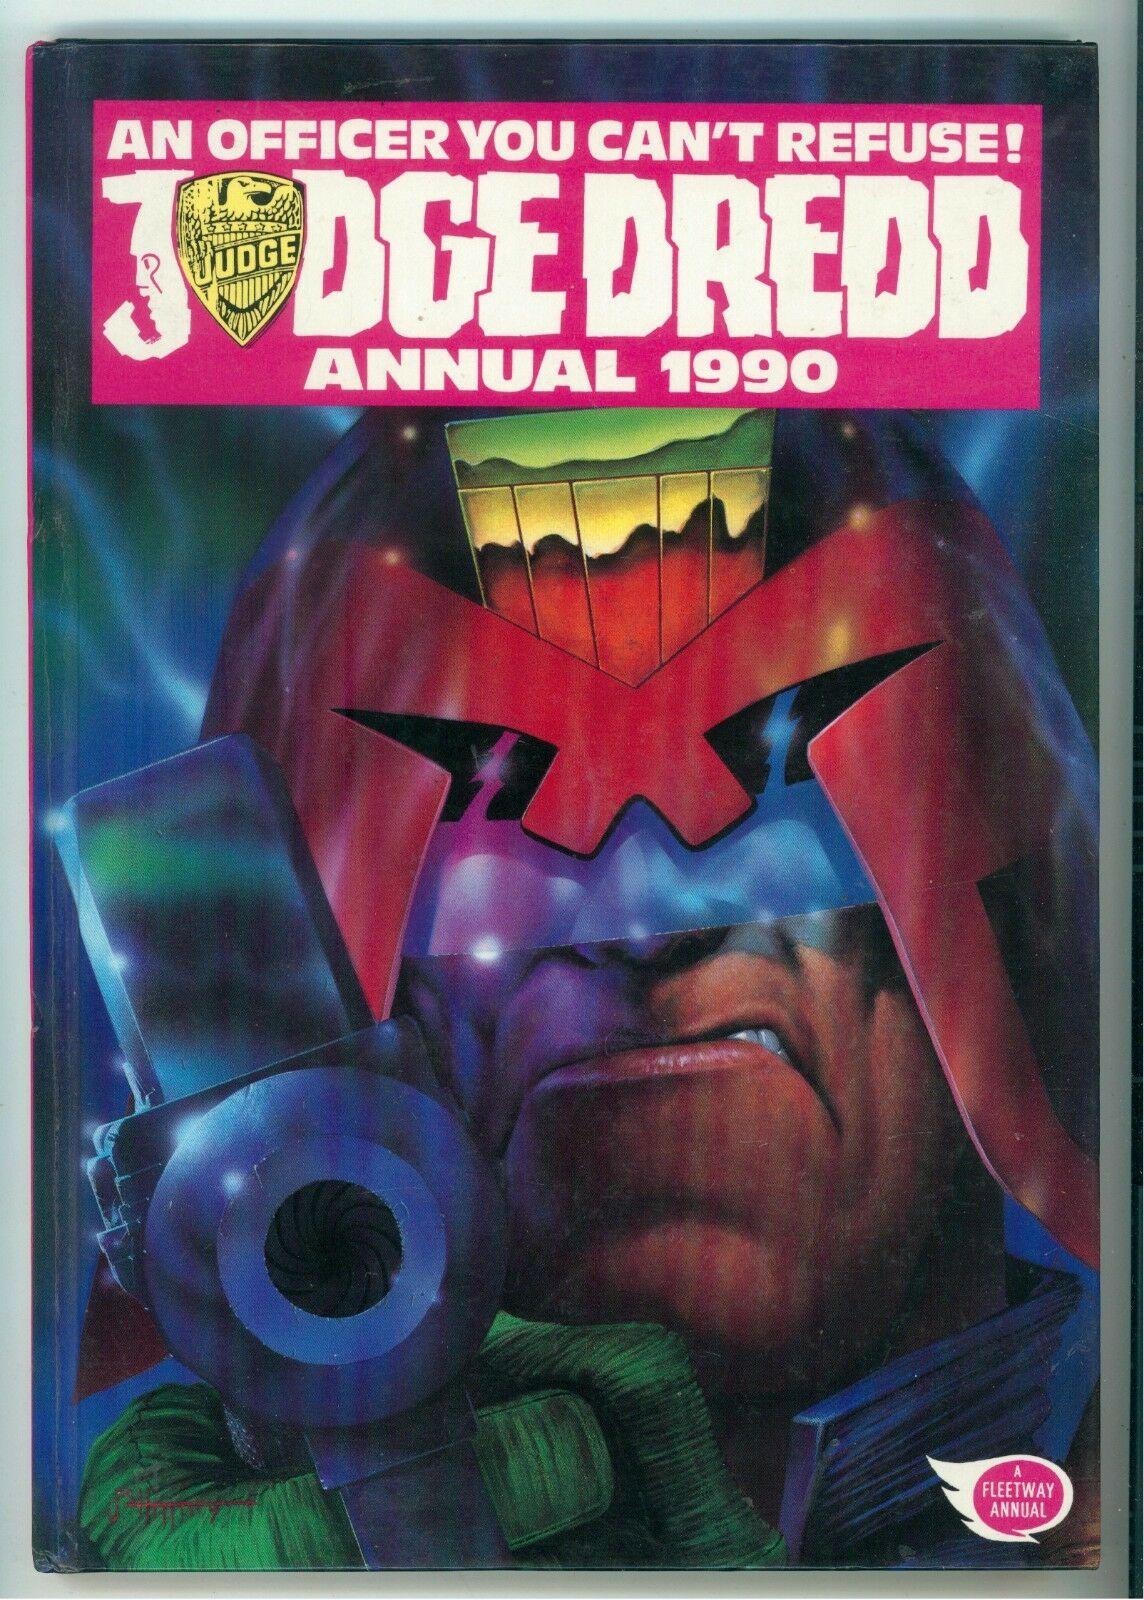 JUDGE DREDD ANNUAL 1990 FLEETWAY PUBLICATIONS 1989